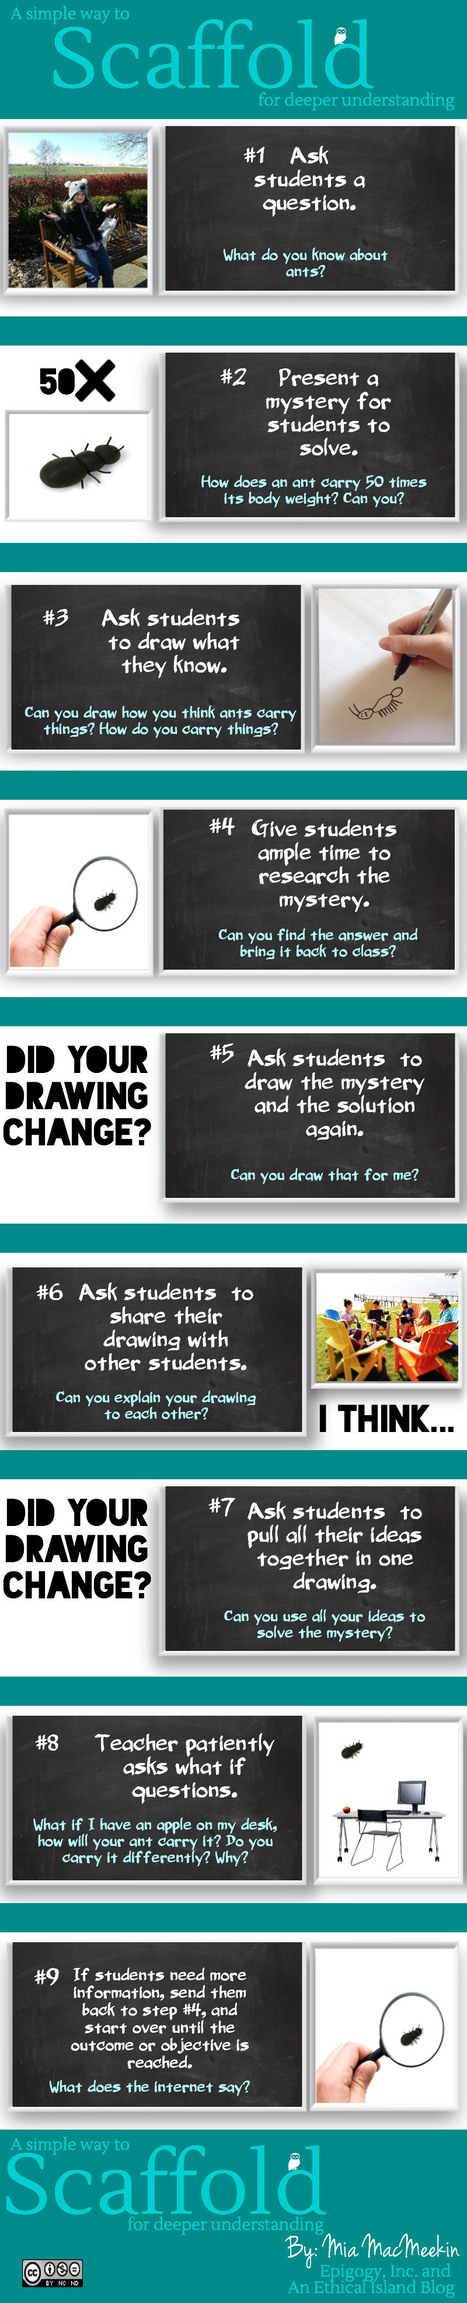 9 Strategies to Scaffold for Students Deeper Learning [Infographic] | Montessori Education | Scoop.it